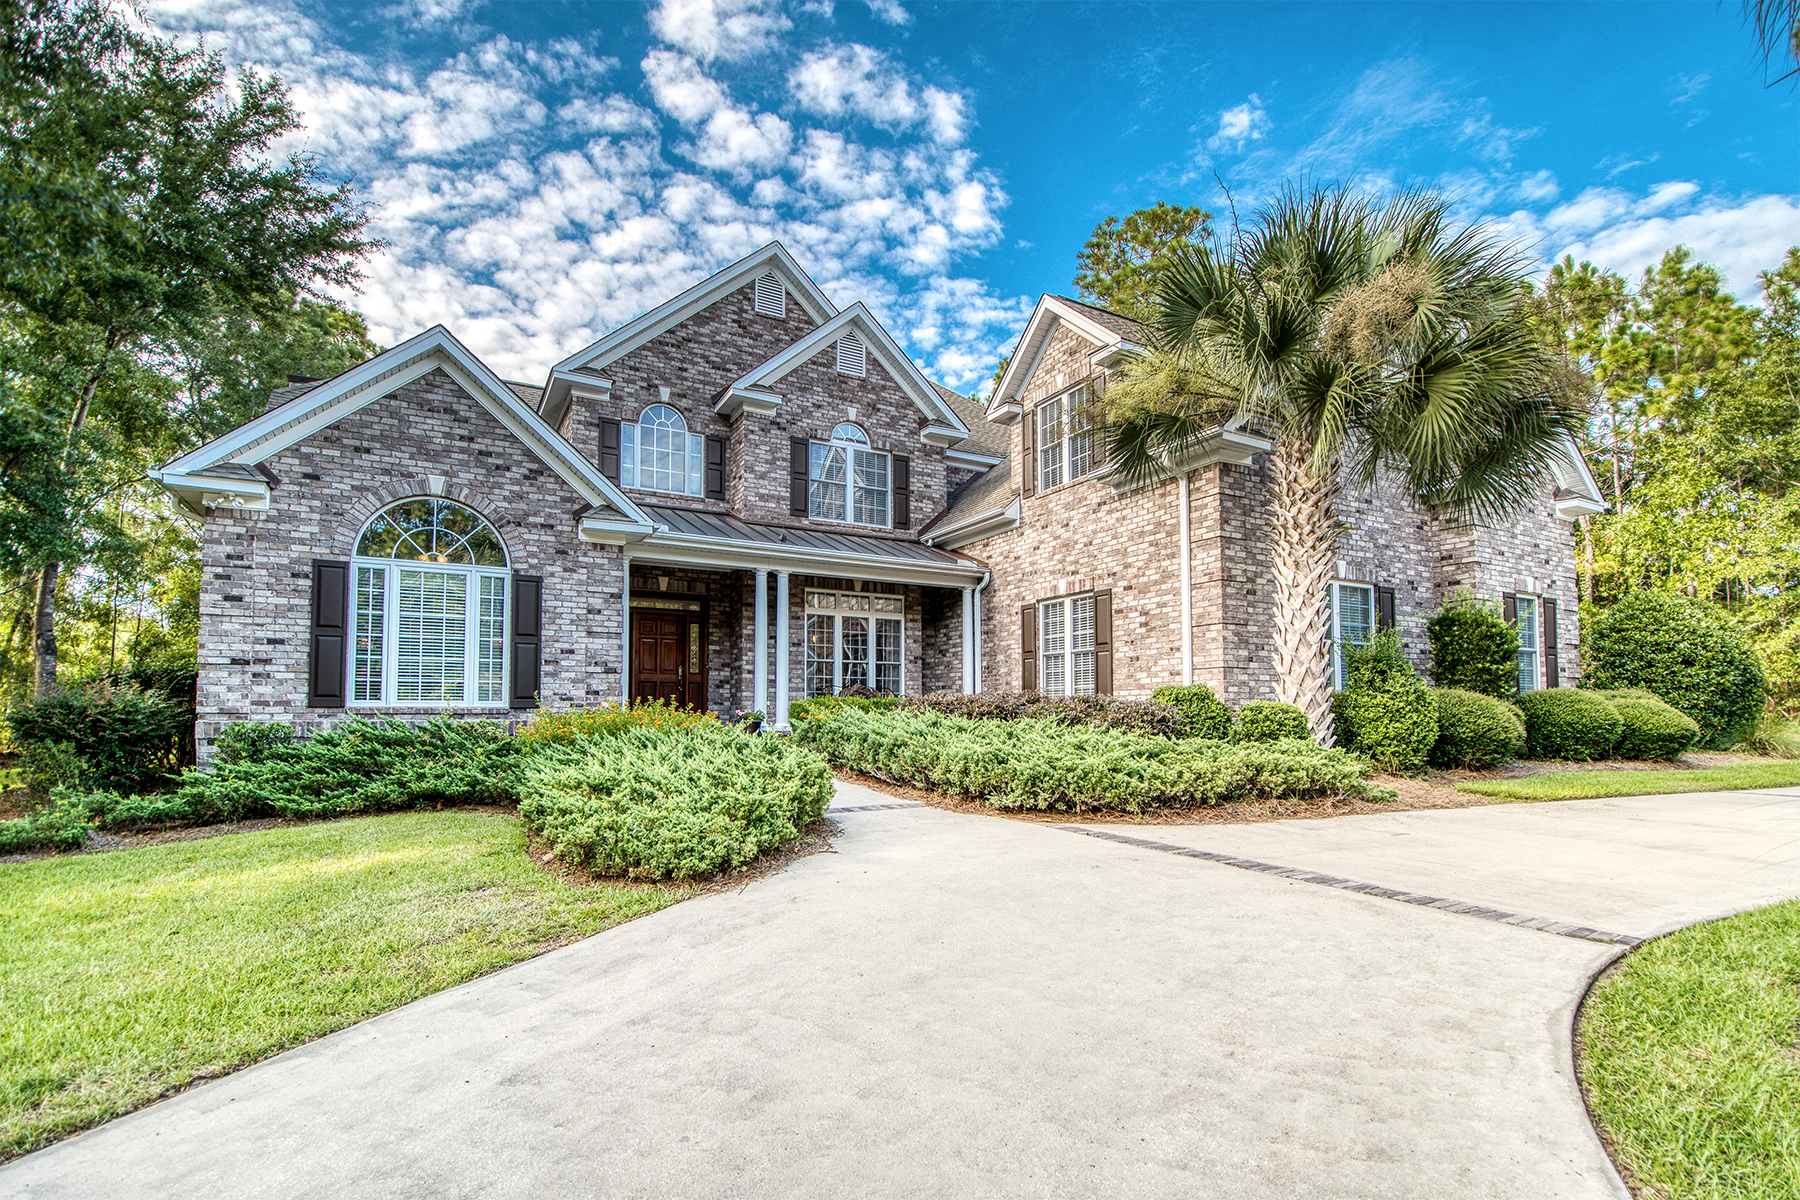 Single Family Homes for Active at 792 Preservation Circle Pawleys Island, South Carolina 29585 United States